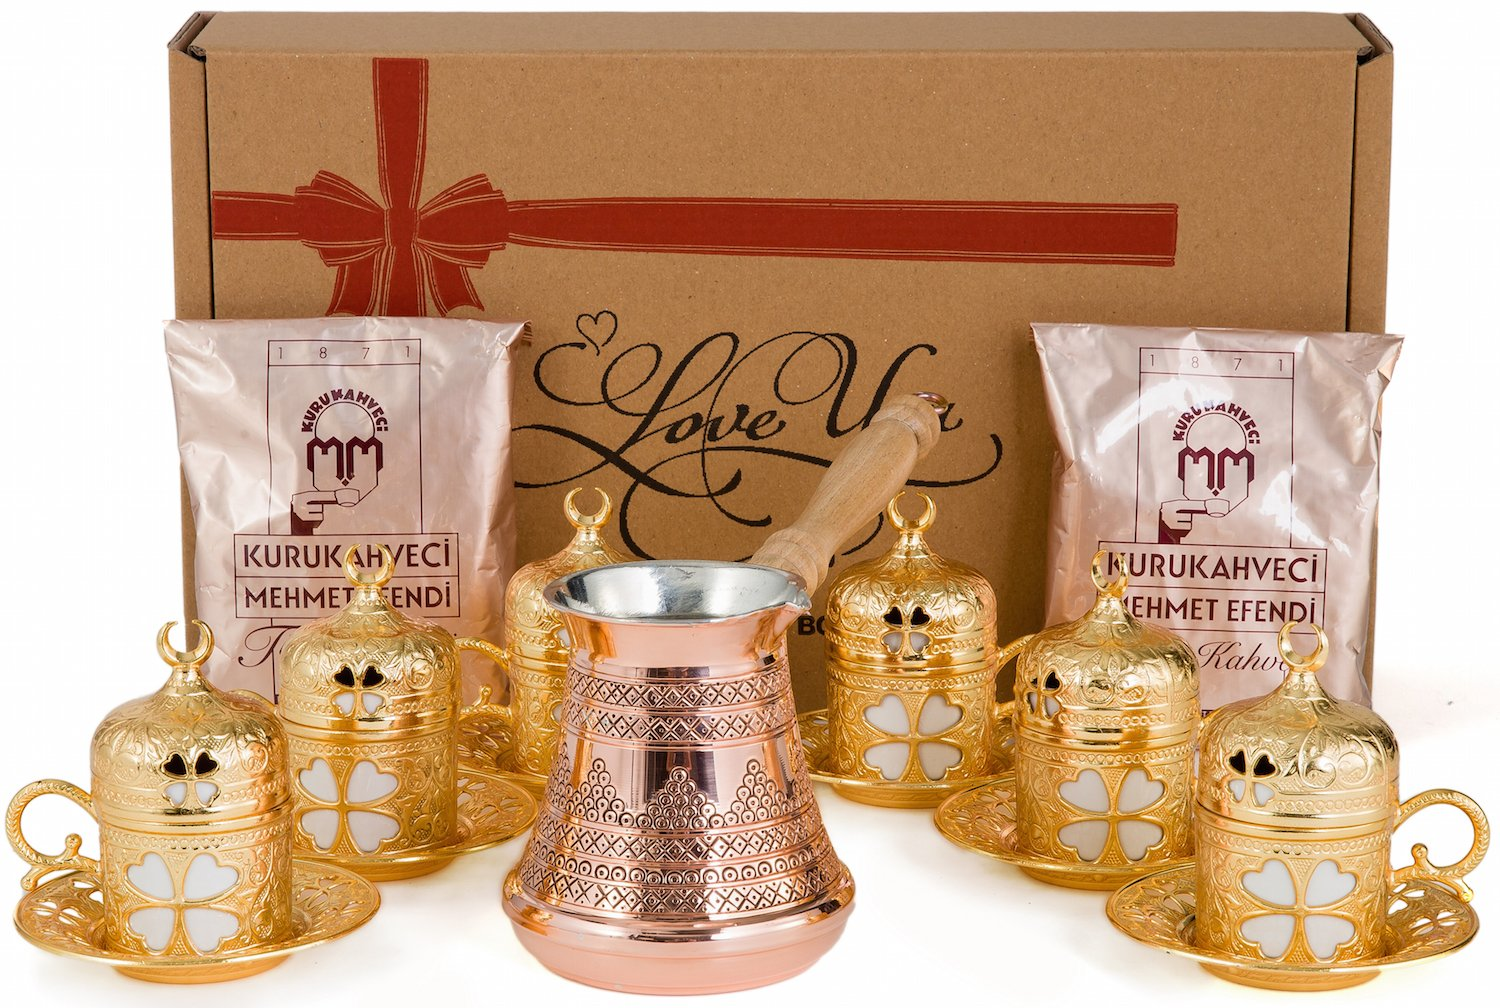 CopperBull Premium Turkish Greek Coffee Espresso Full Set with Copper Pot, Cups, Coffee for 6 (Gold)